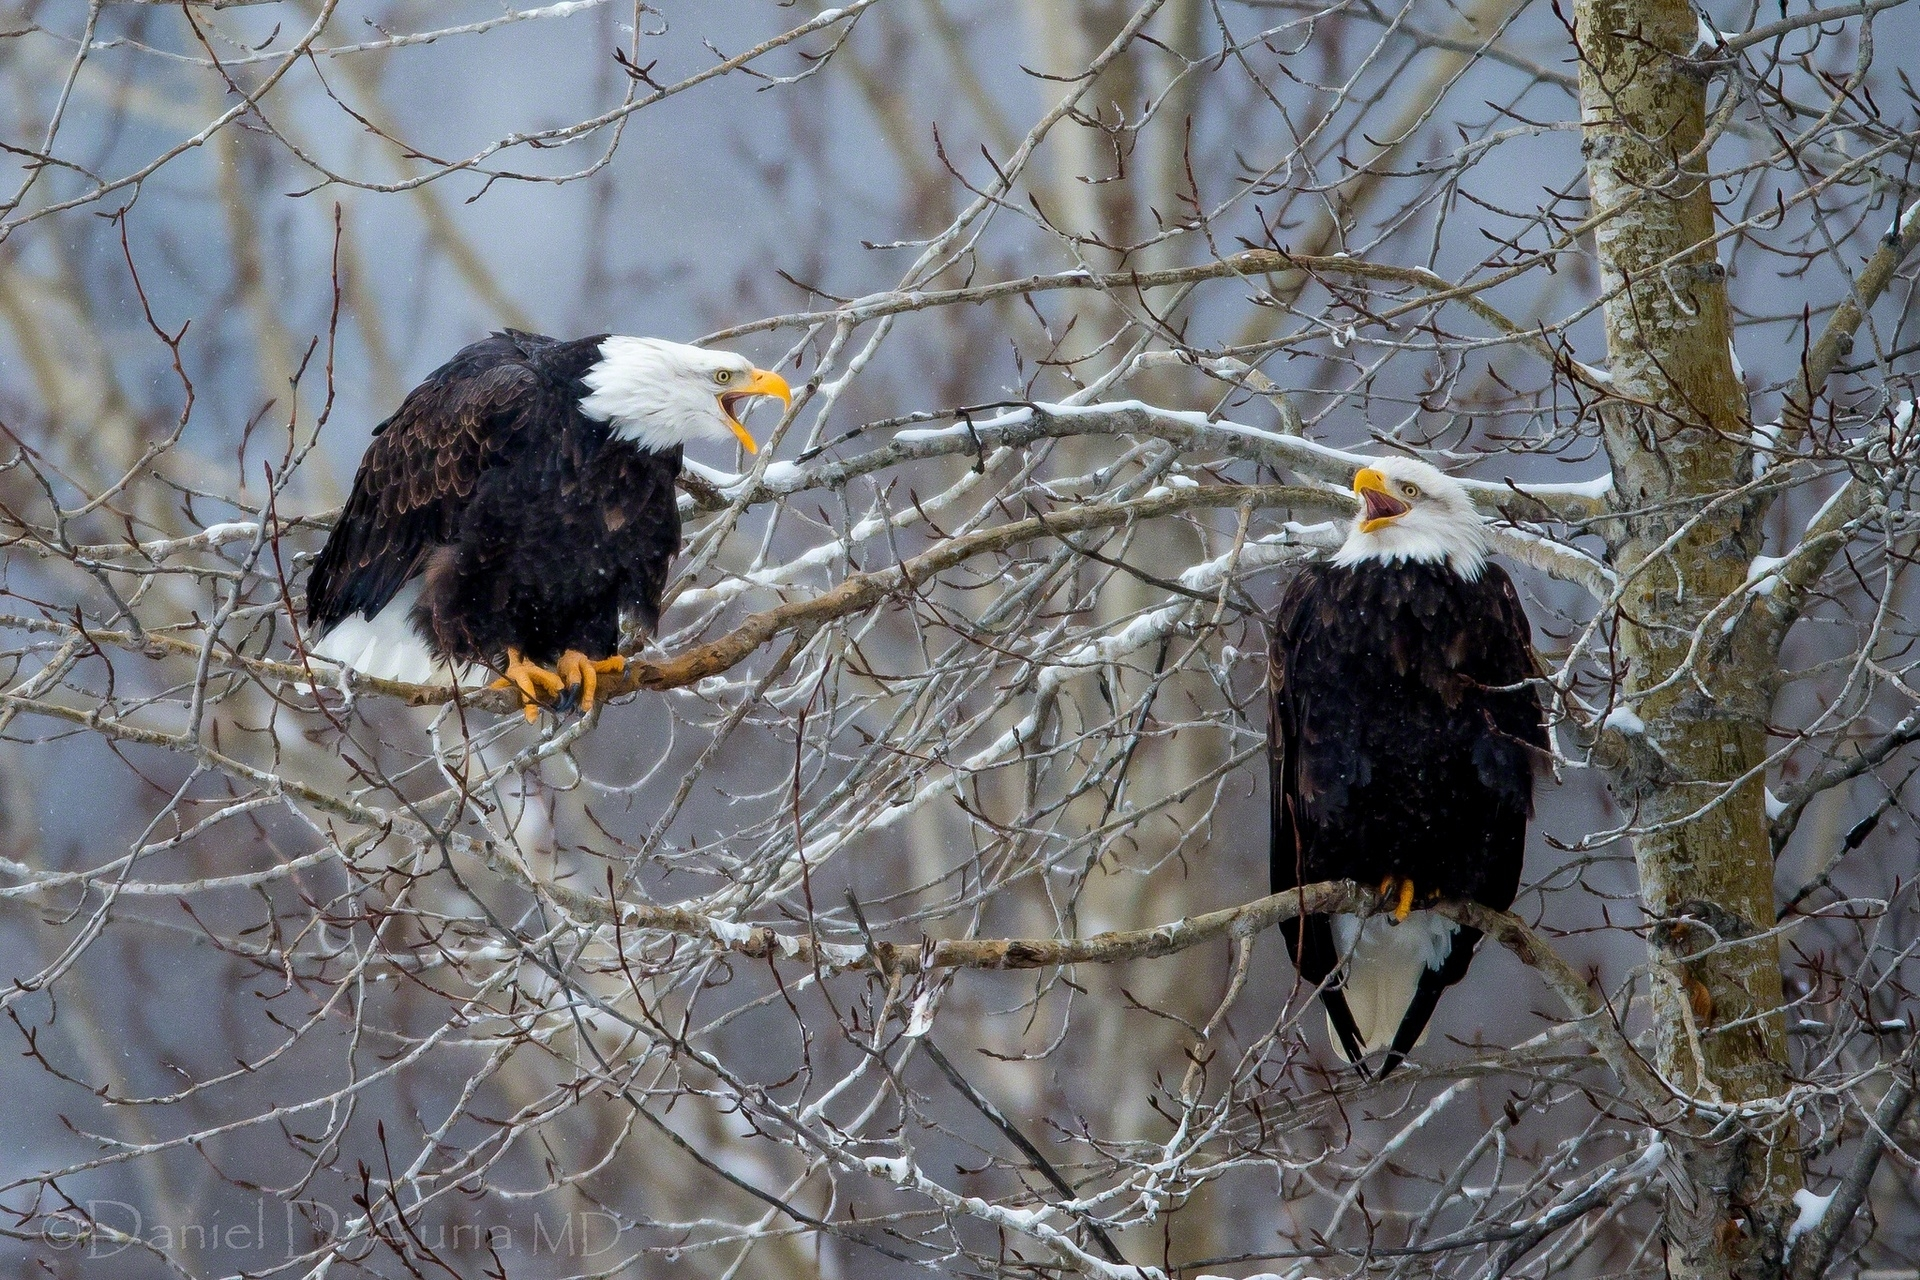 117926 download wallpaper Animals, Bald Eagle, White-Headed Eagle, Wood, Tree, Branches, Birds screensavers and pictures for free